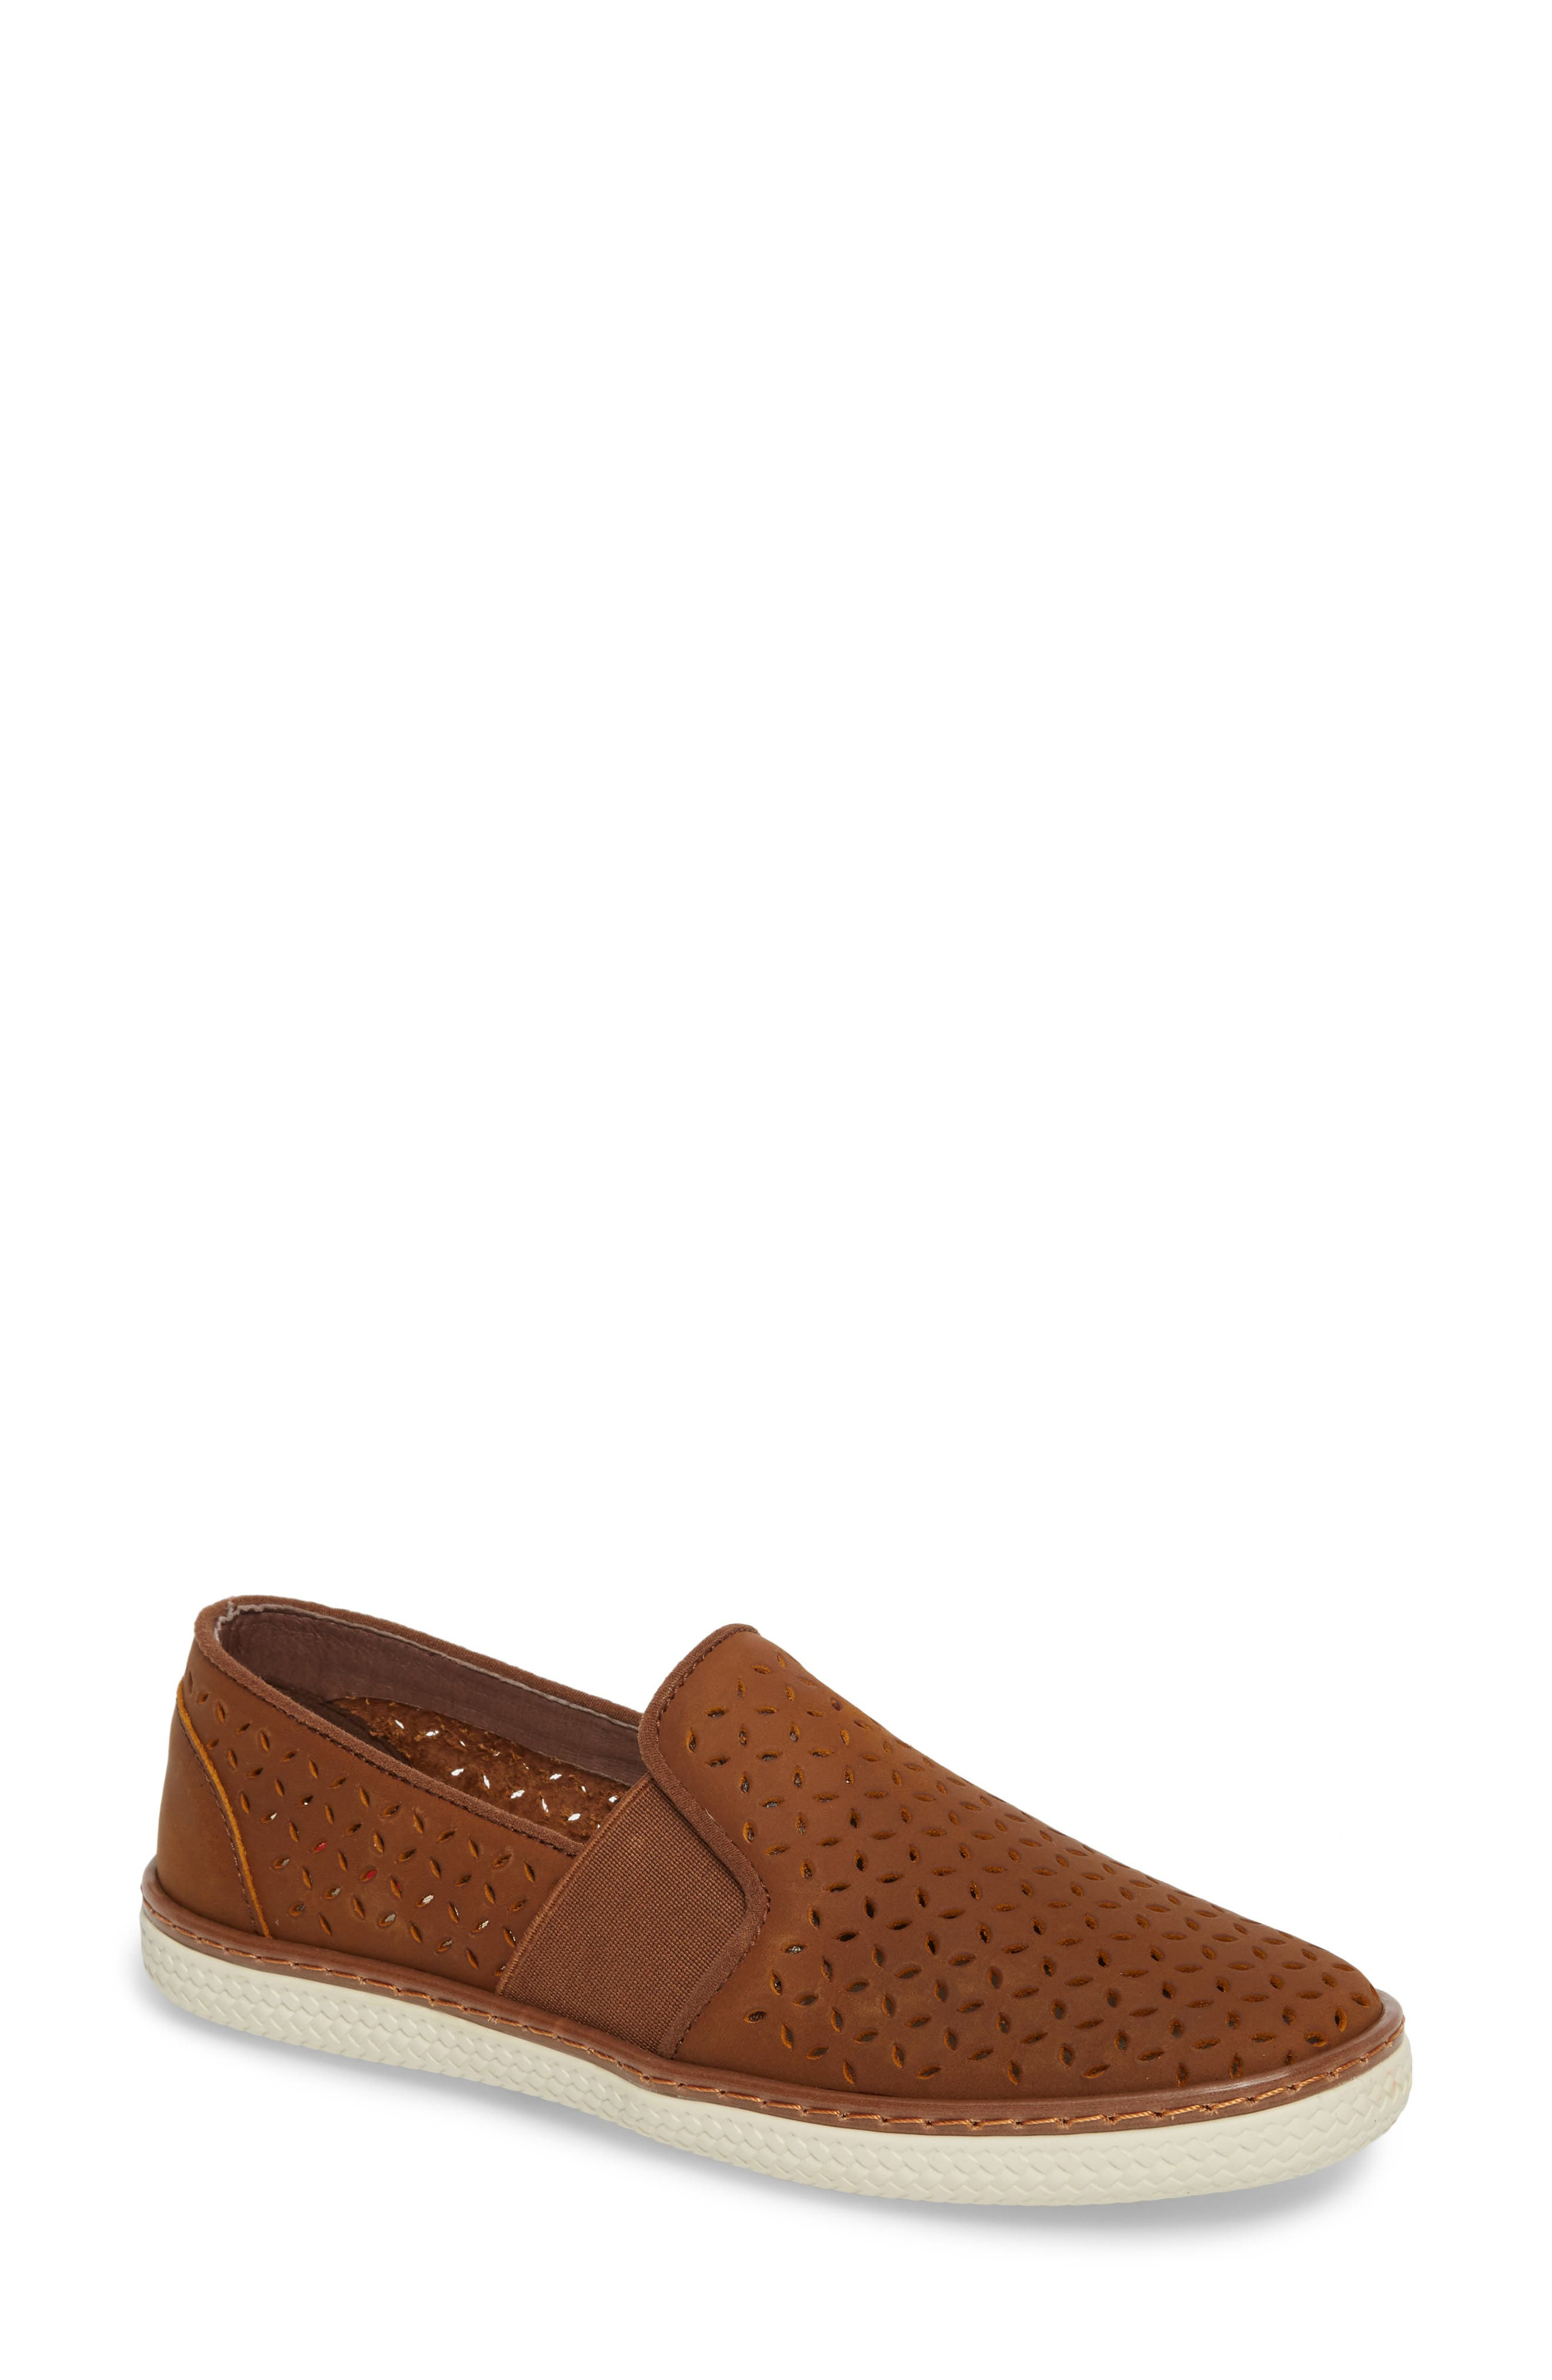 Jasper Perforated Loafer Flat,                         Main,                         color, Brown Leather